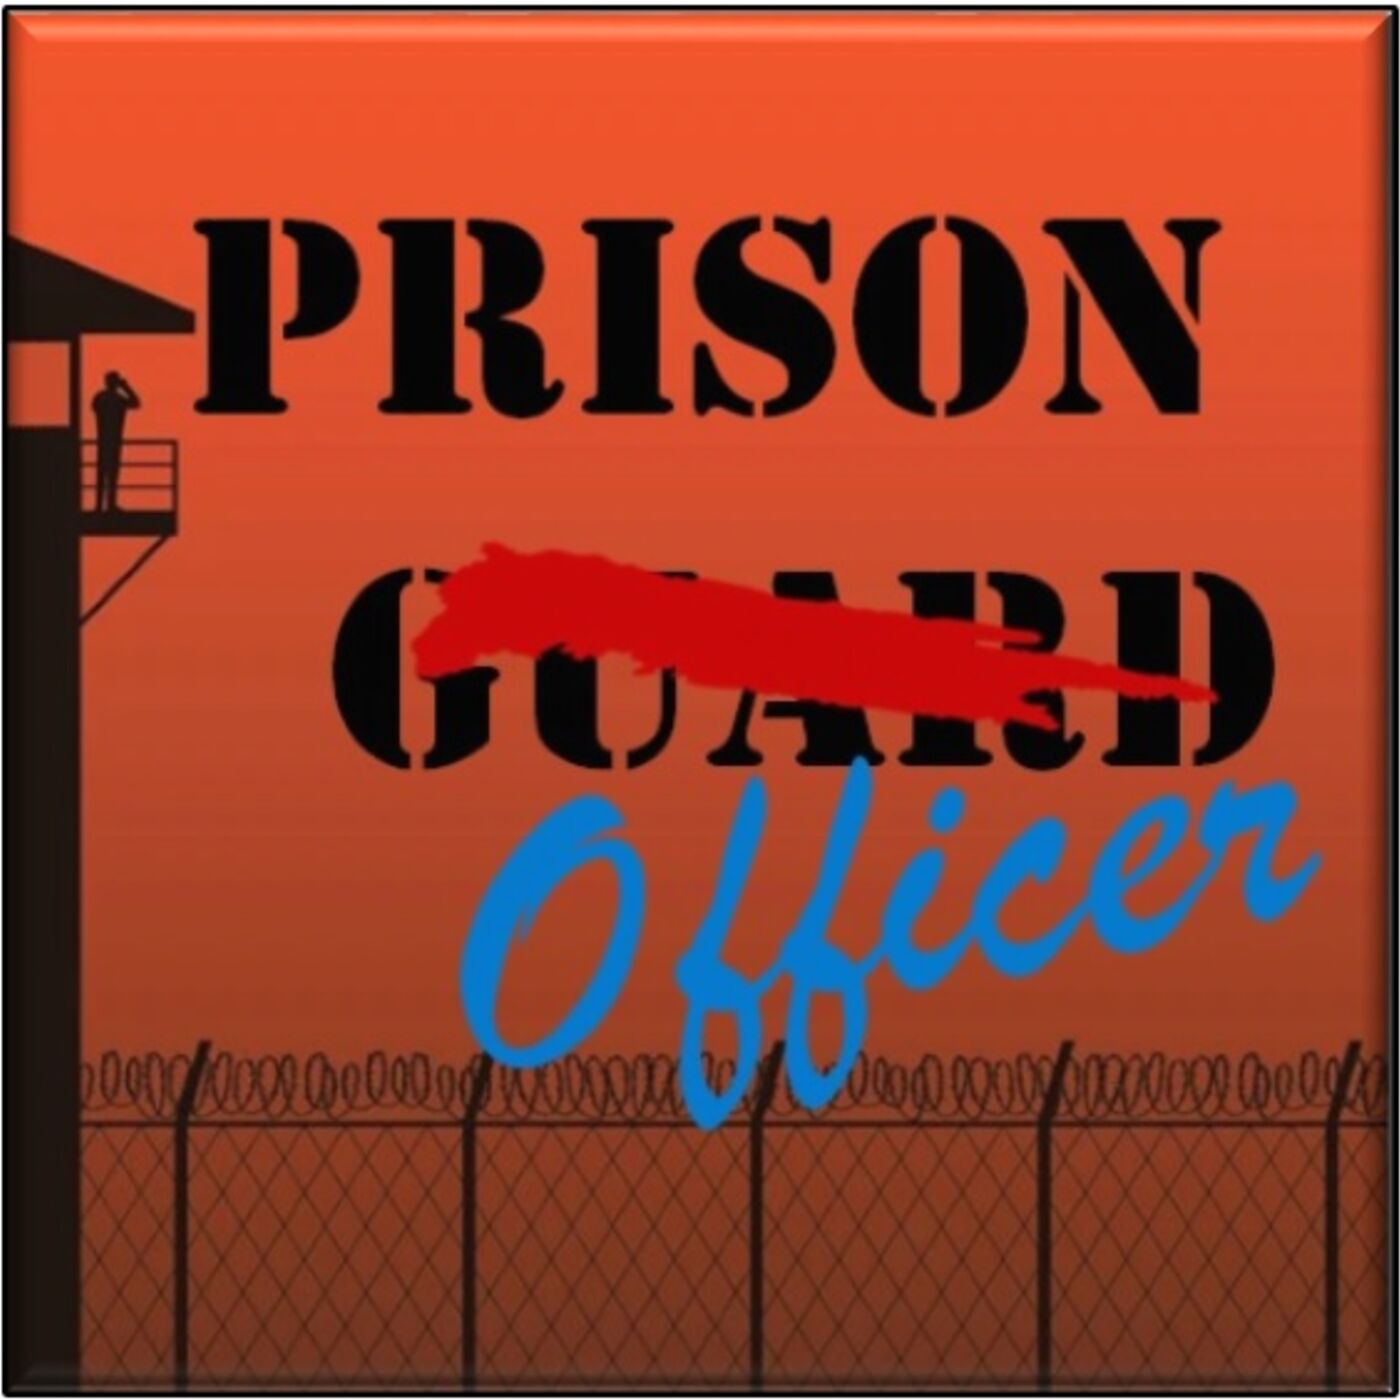 The Prison Officer Podcast